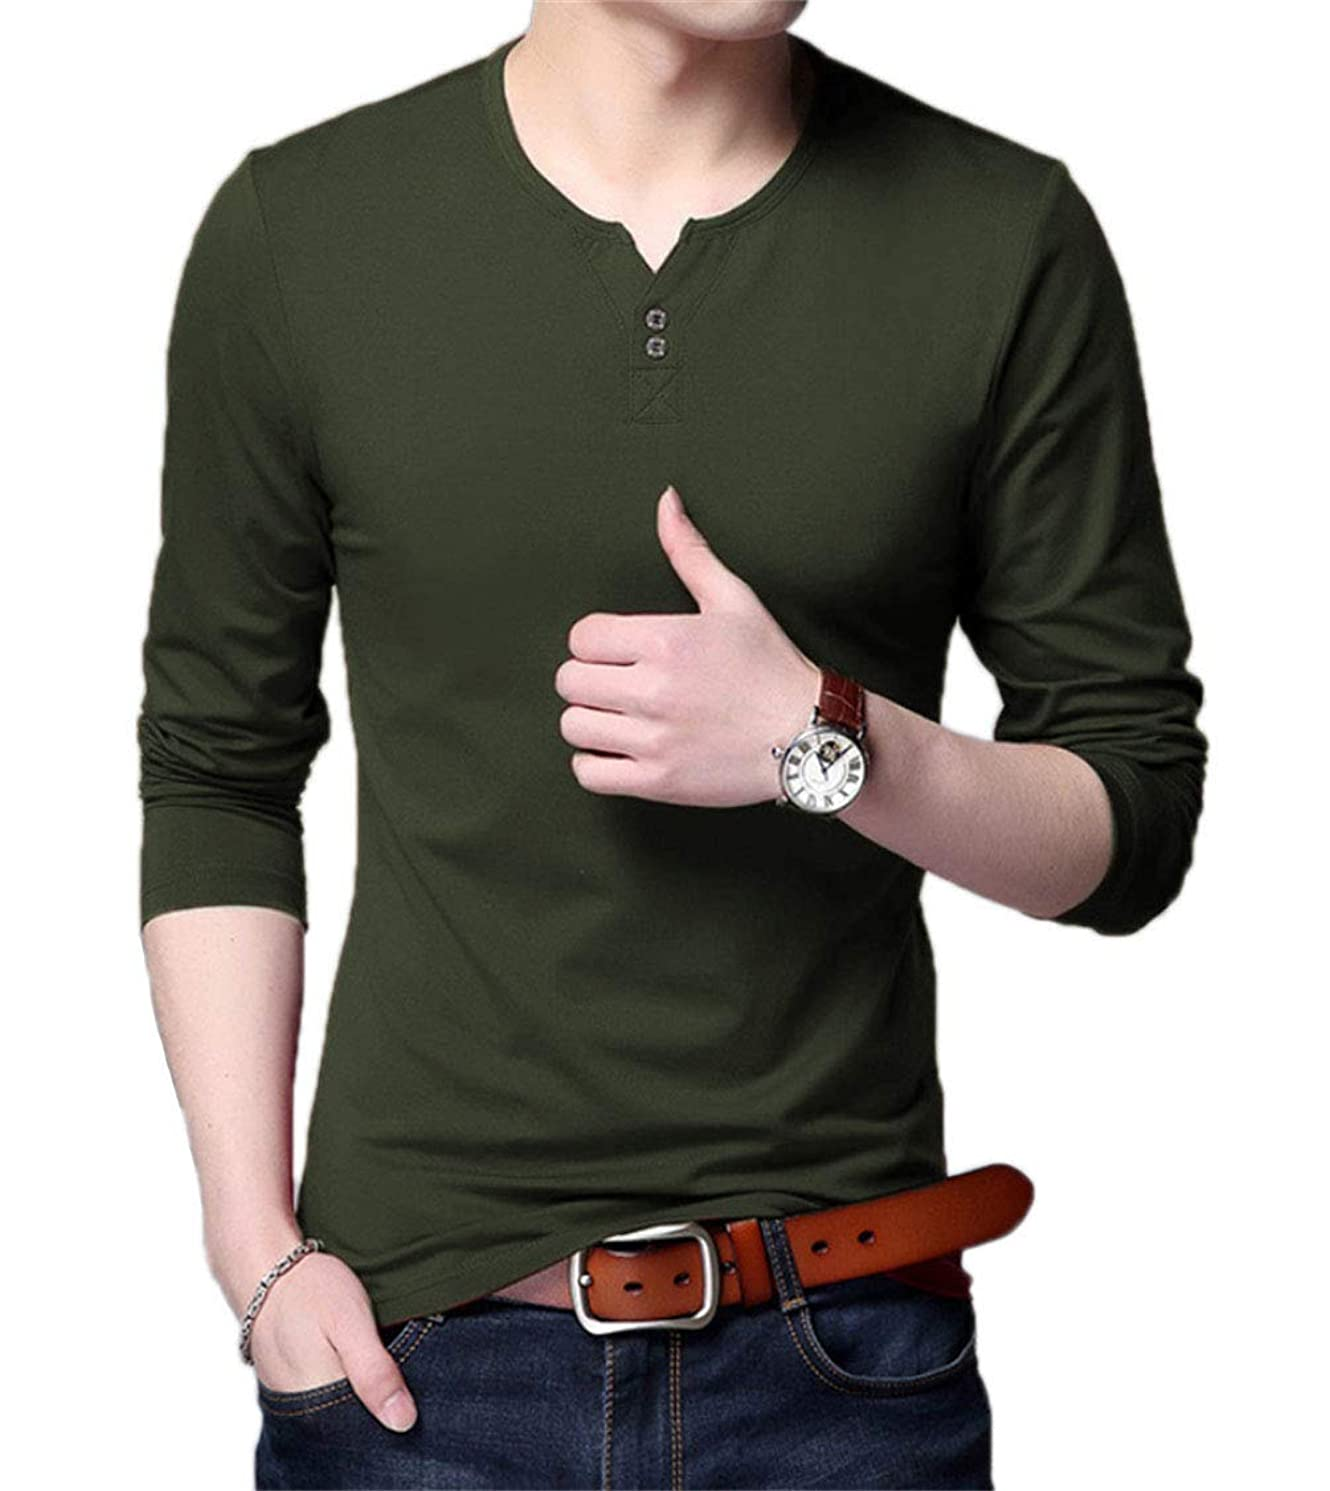 Aiyino Mens Casual Slim Fit Shortg Sleeve Henley T-Shirts Cotton Shirts